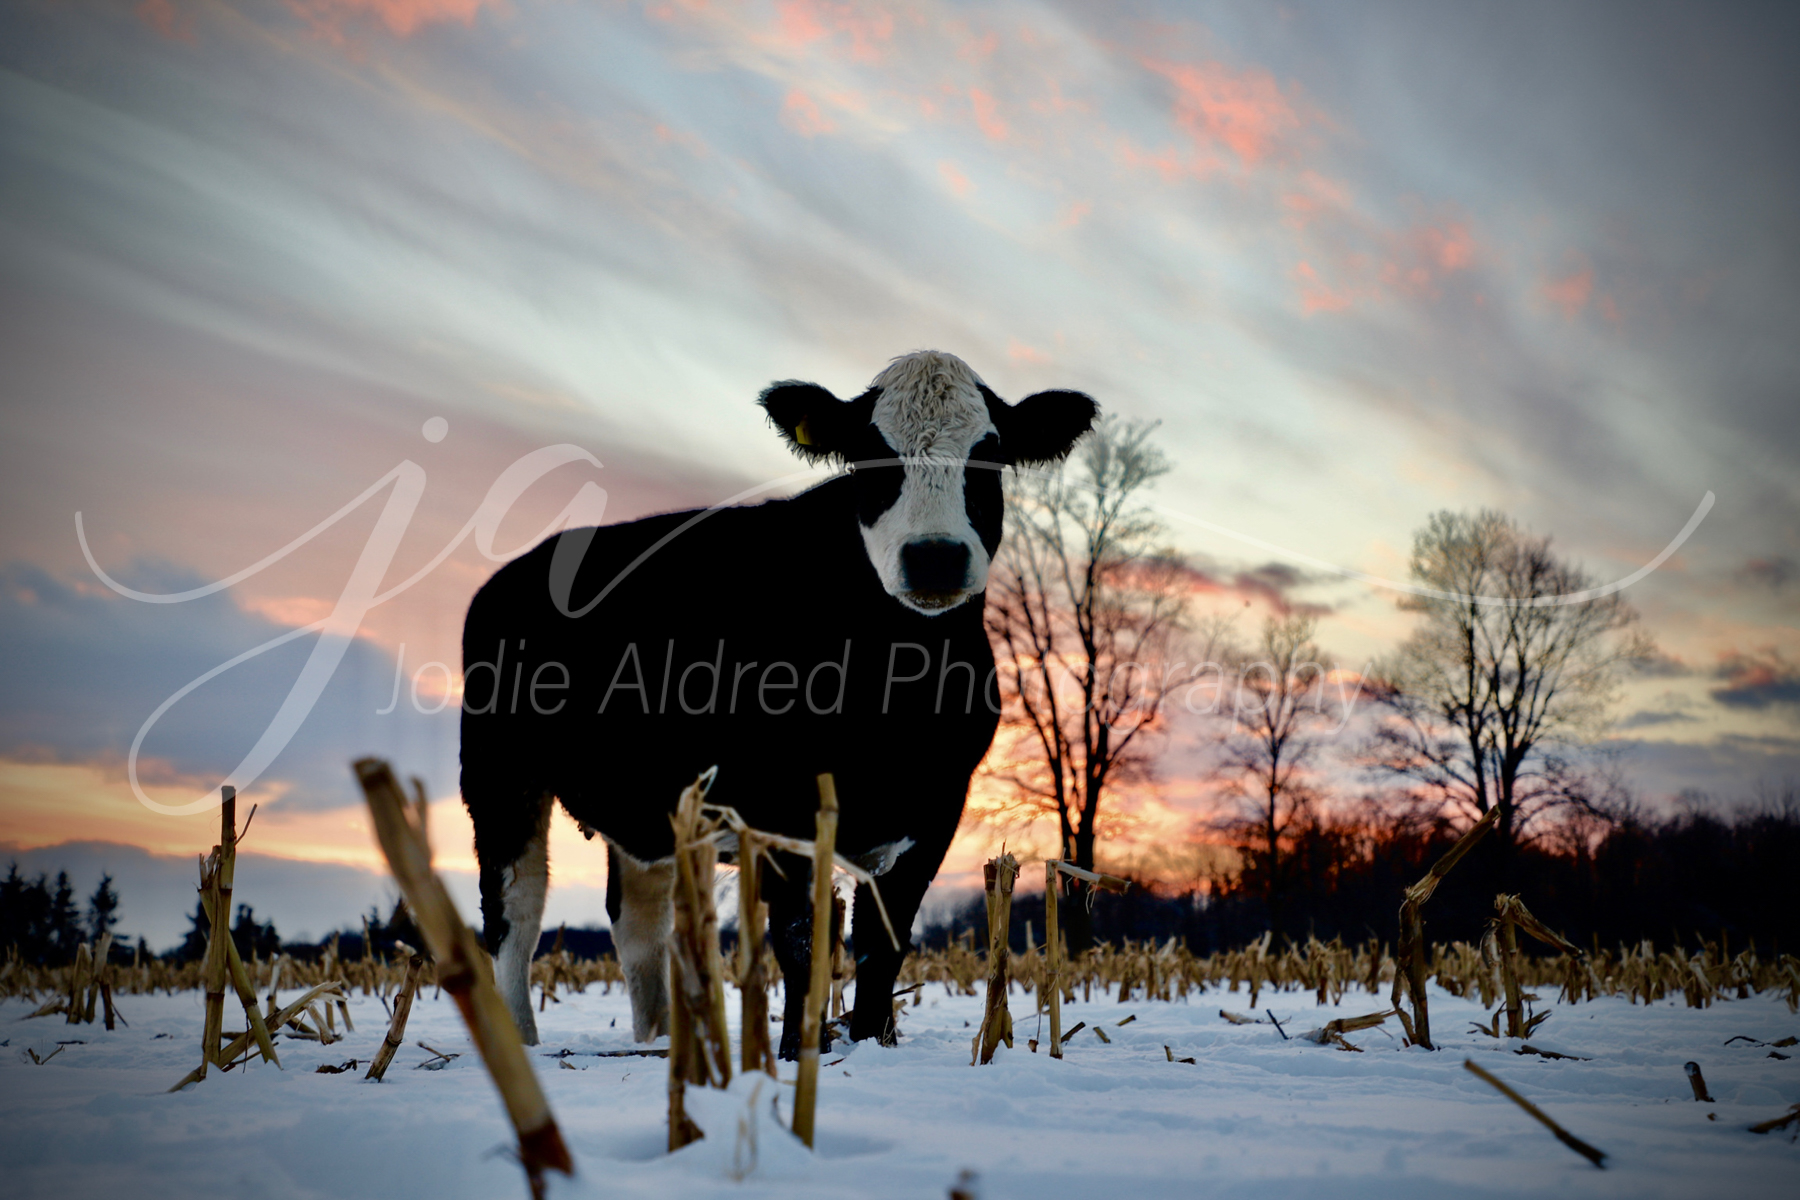 Jodie-Aldred-Photography-Cow-Steer-Calf-Cattle-Black-White-Snow-Winter-Barnyard-Ontario-Agriculture-Sunset-Corn.jpg